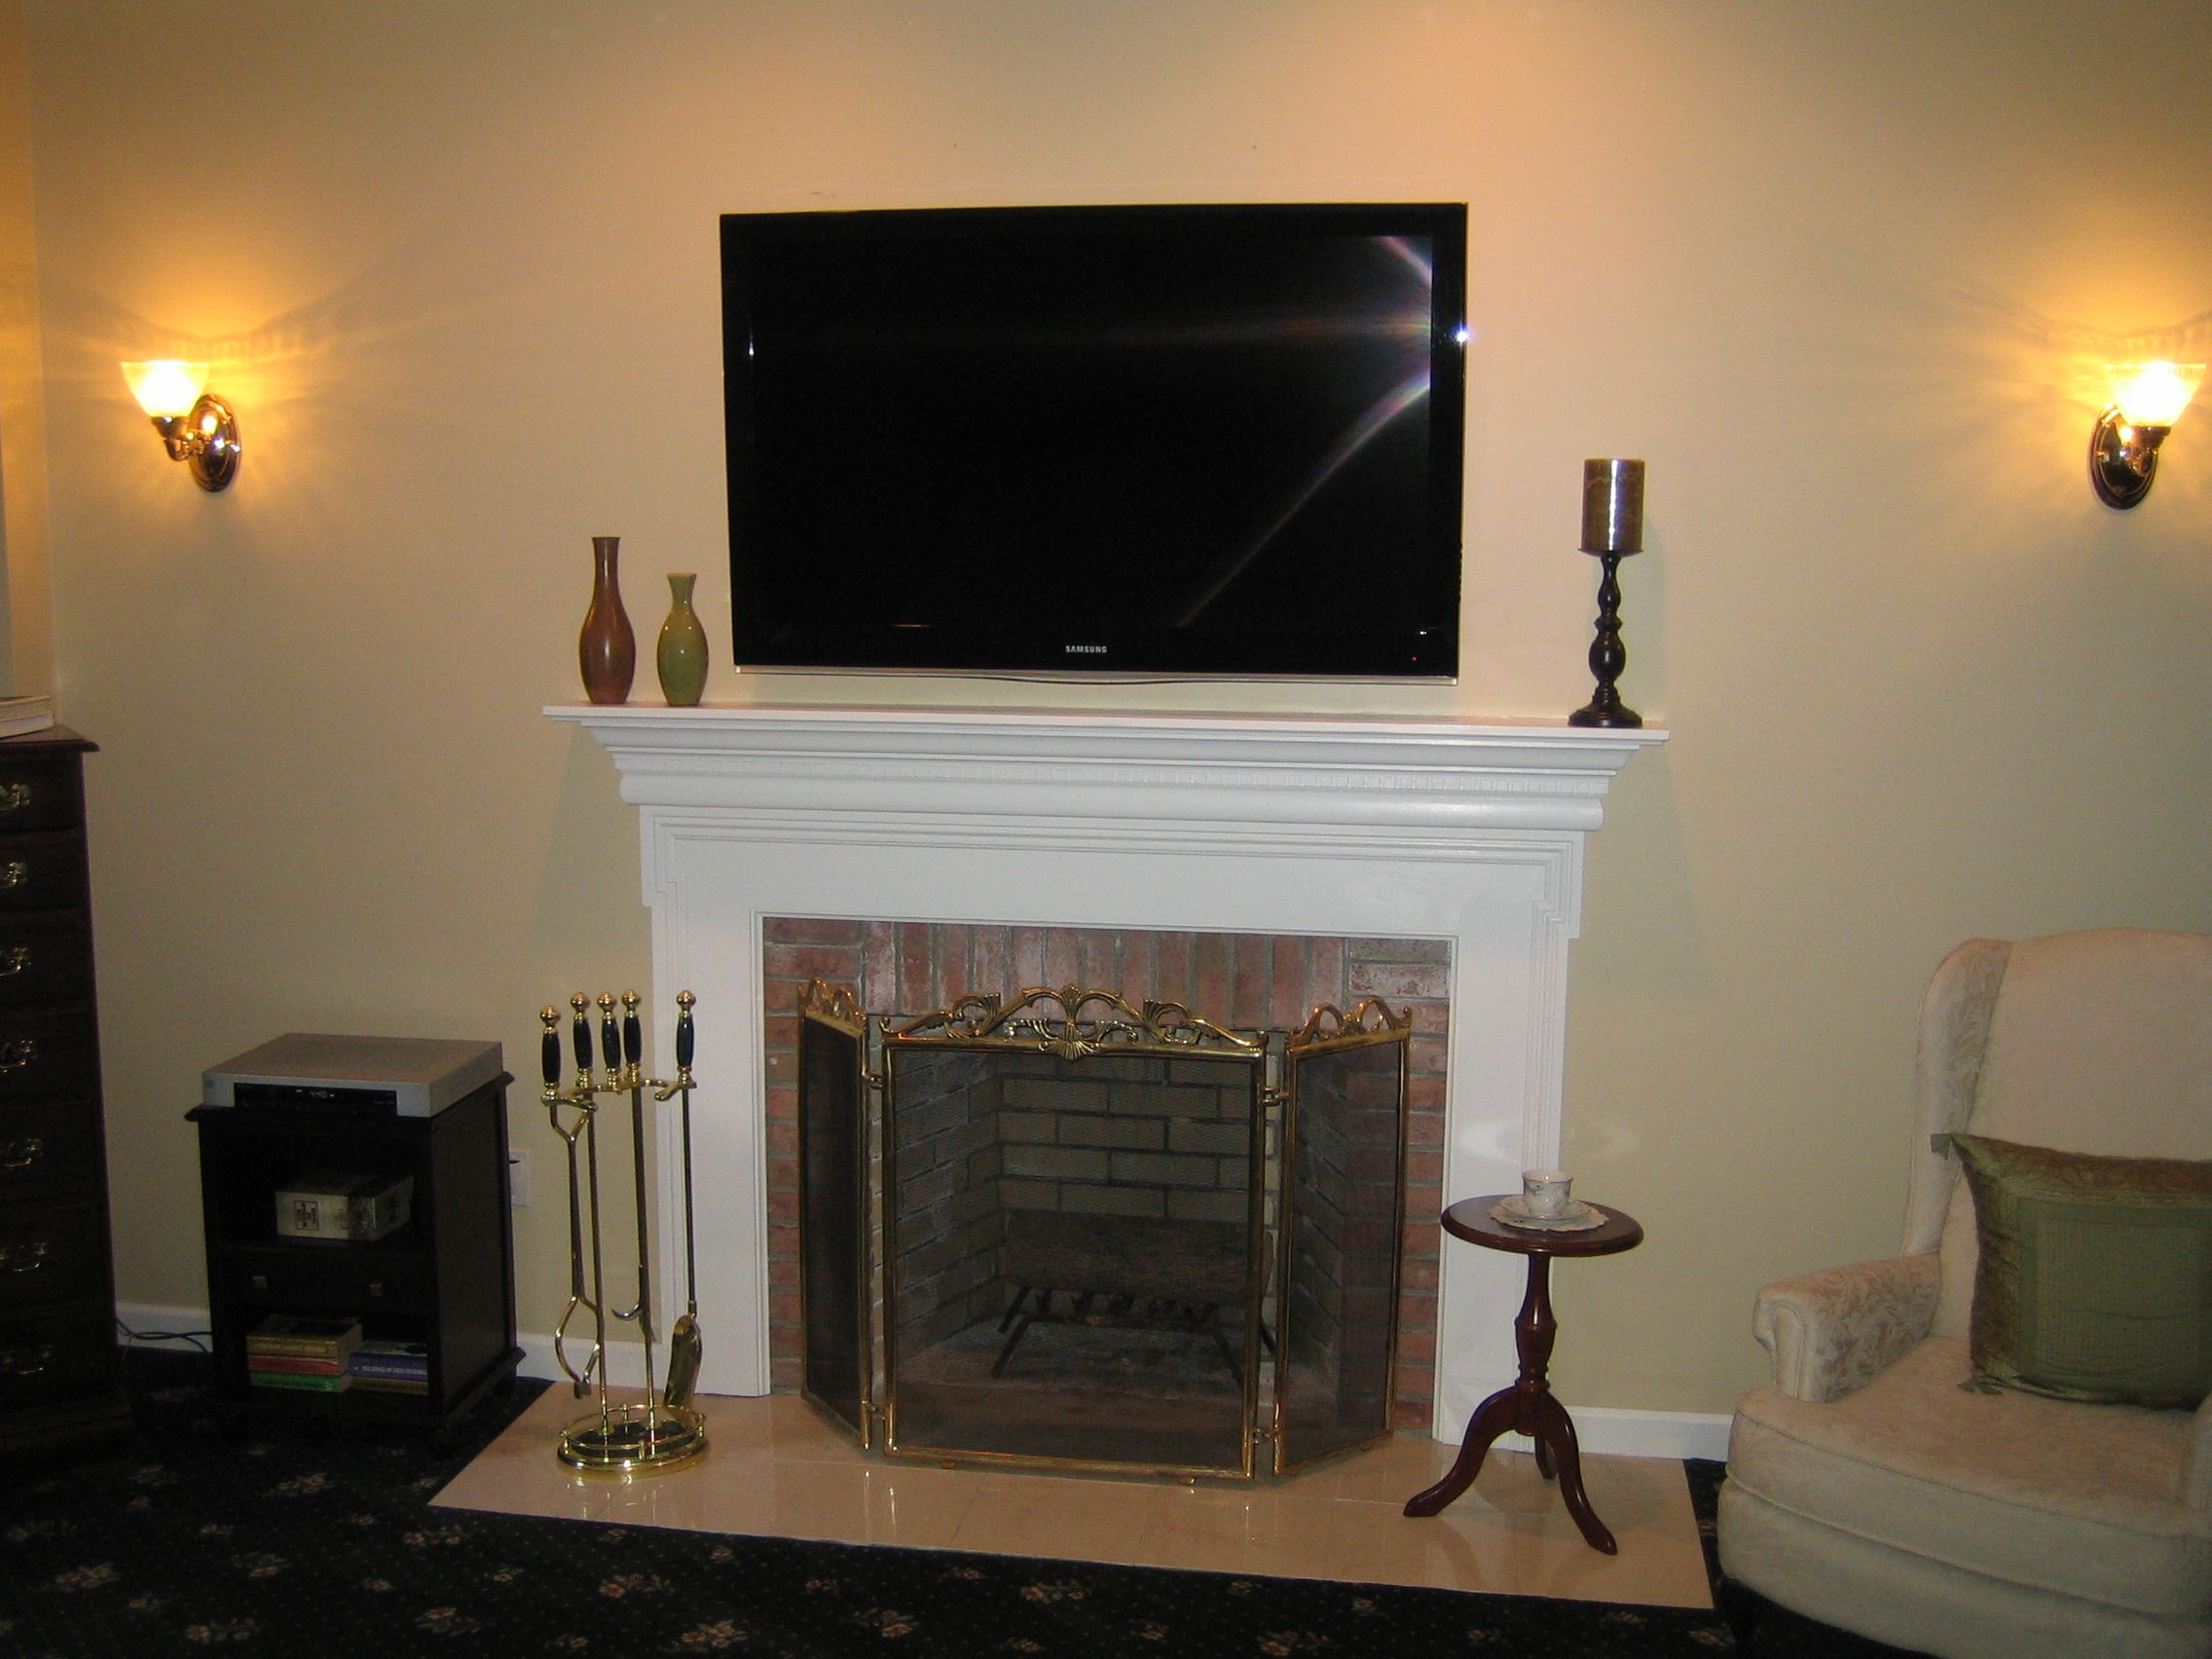 Exceptional Mounting A Tv Over A Fireplace | over the mantel tv ...